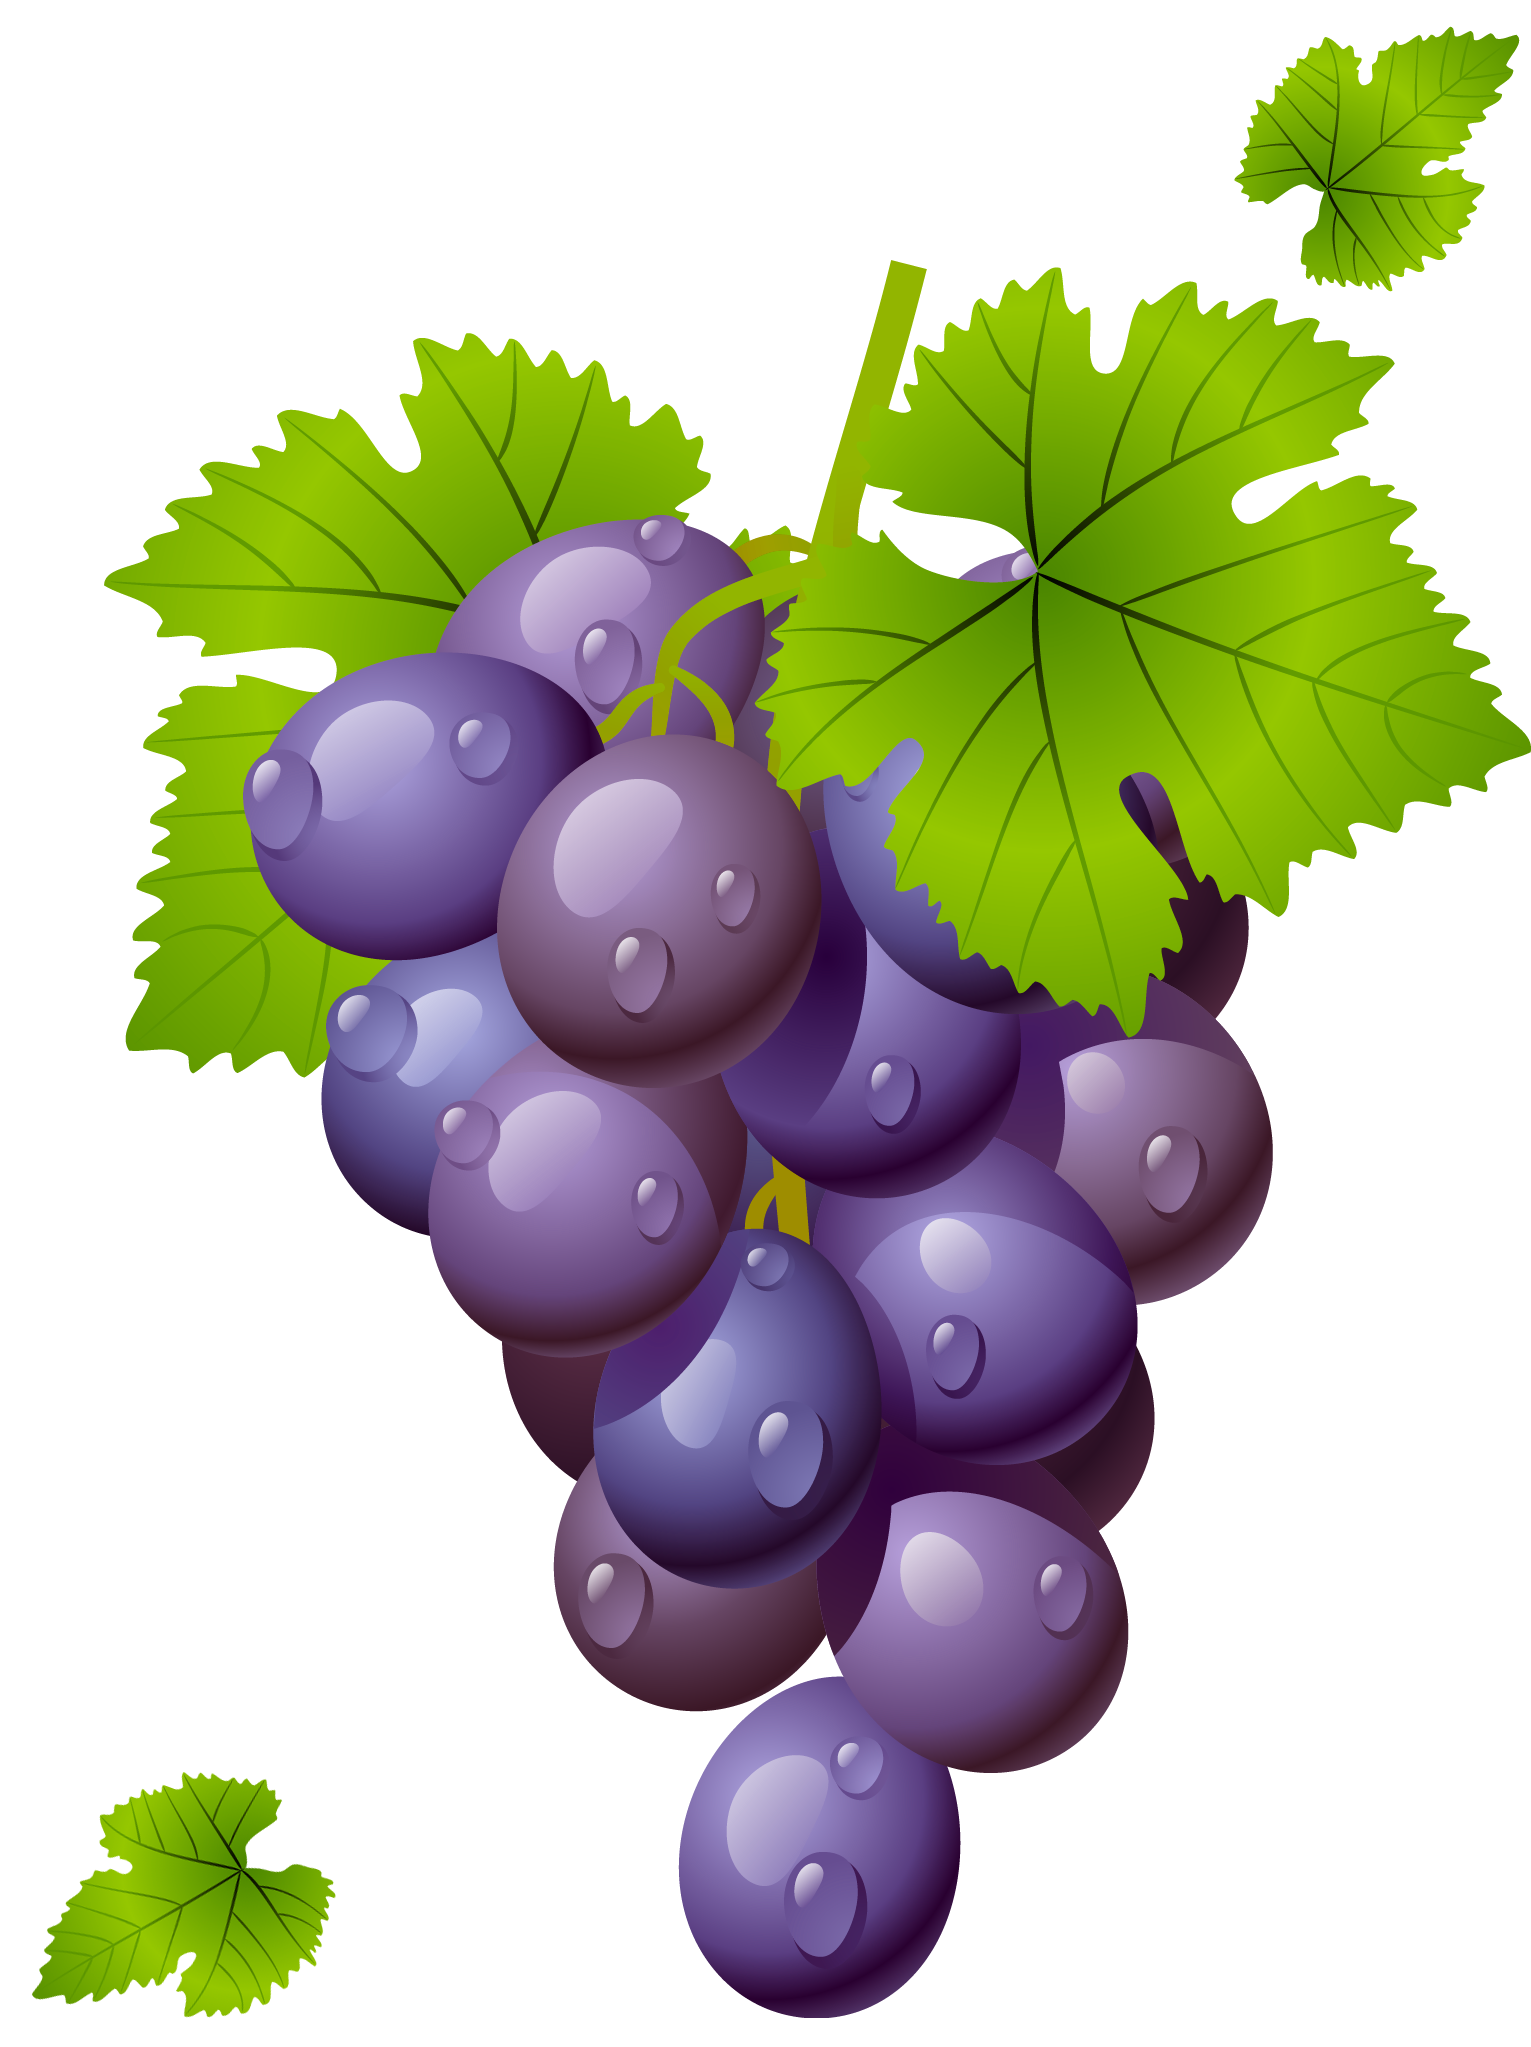 grape with leaves png clipart picture fintyfluszki pinterest rh pinterest com grace clip art free grape clip art free